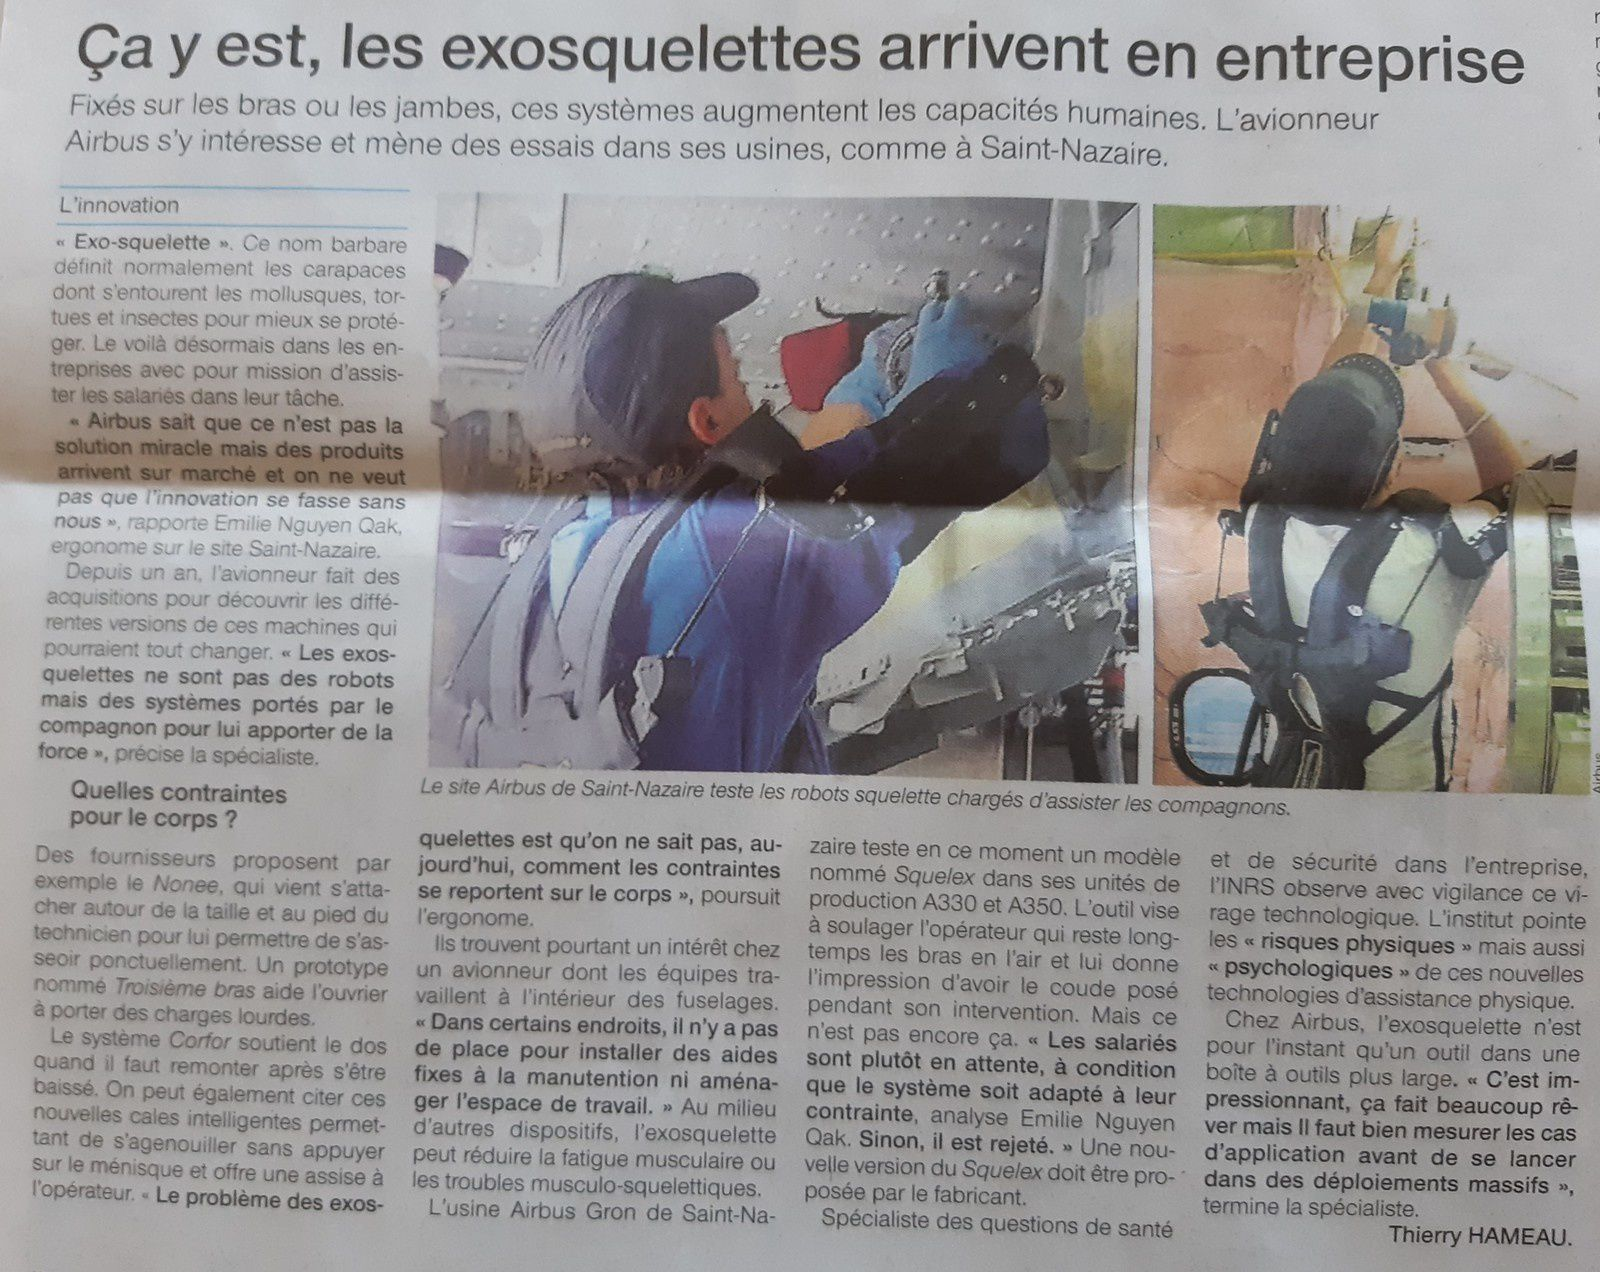 artcile Ouest France 2018 06 25 - exosquelettes